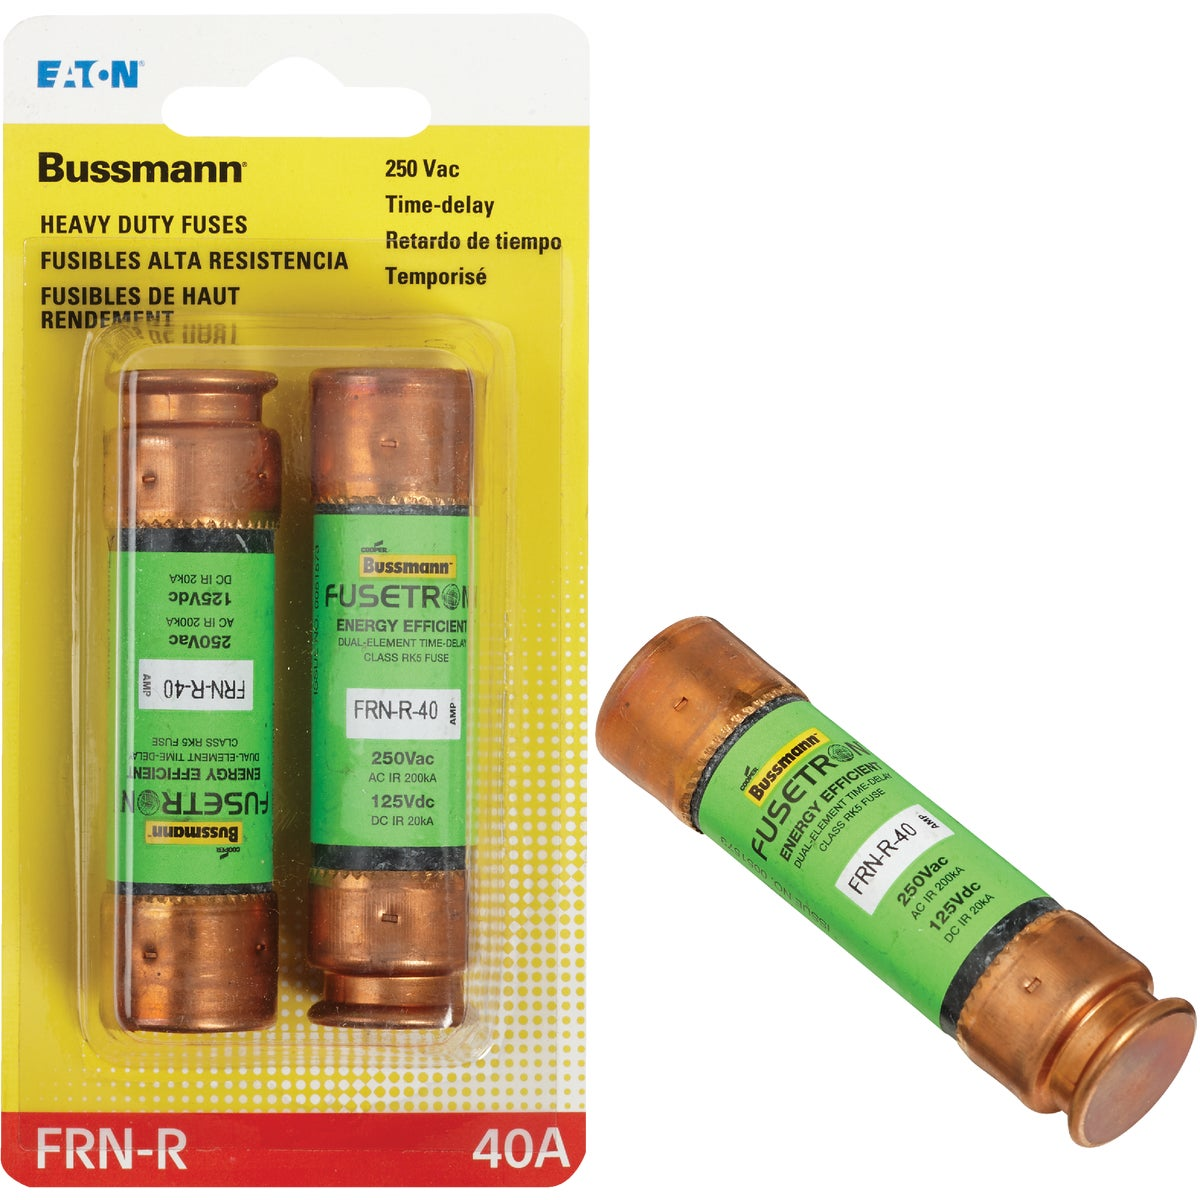 40A CARTRIDGE FUSE - BP/FRN-R-40 by Bussmann Cooper